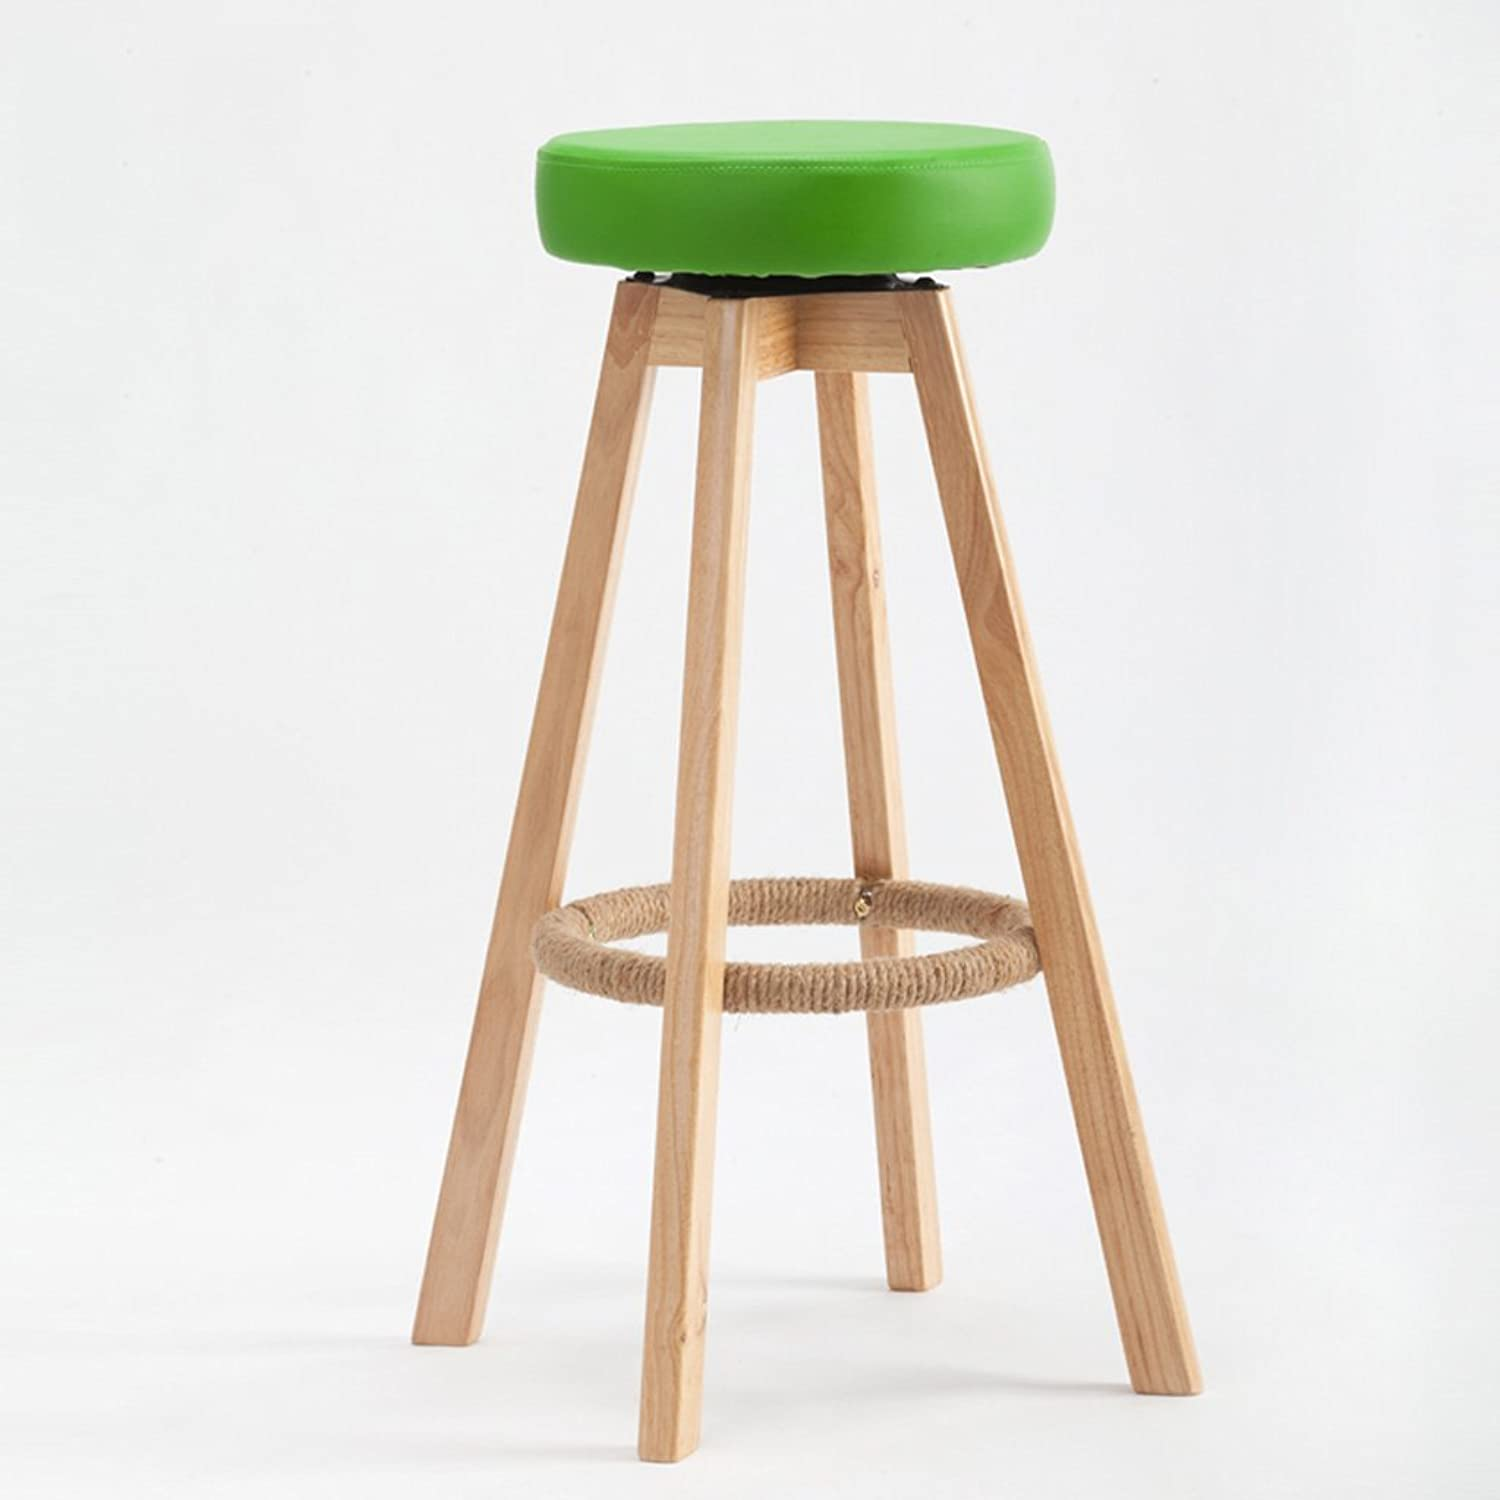 Bar Stool Wooden Bar Stool Leather Kitchen Breakfast Chair redating High Stool, 1Pcs, 48  74cm (color   Green)